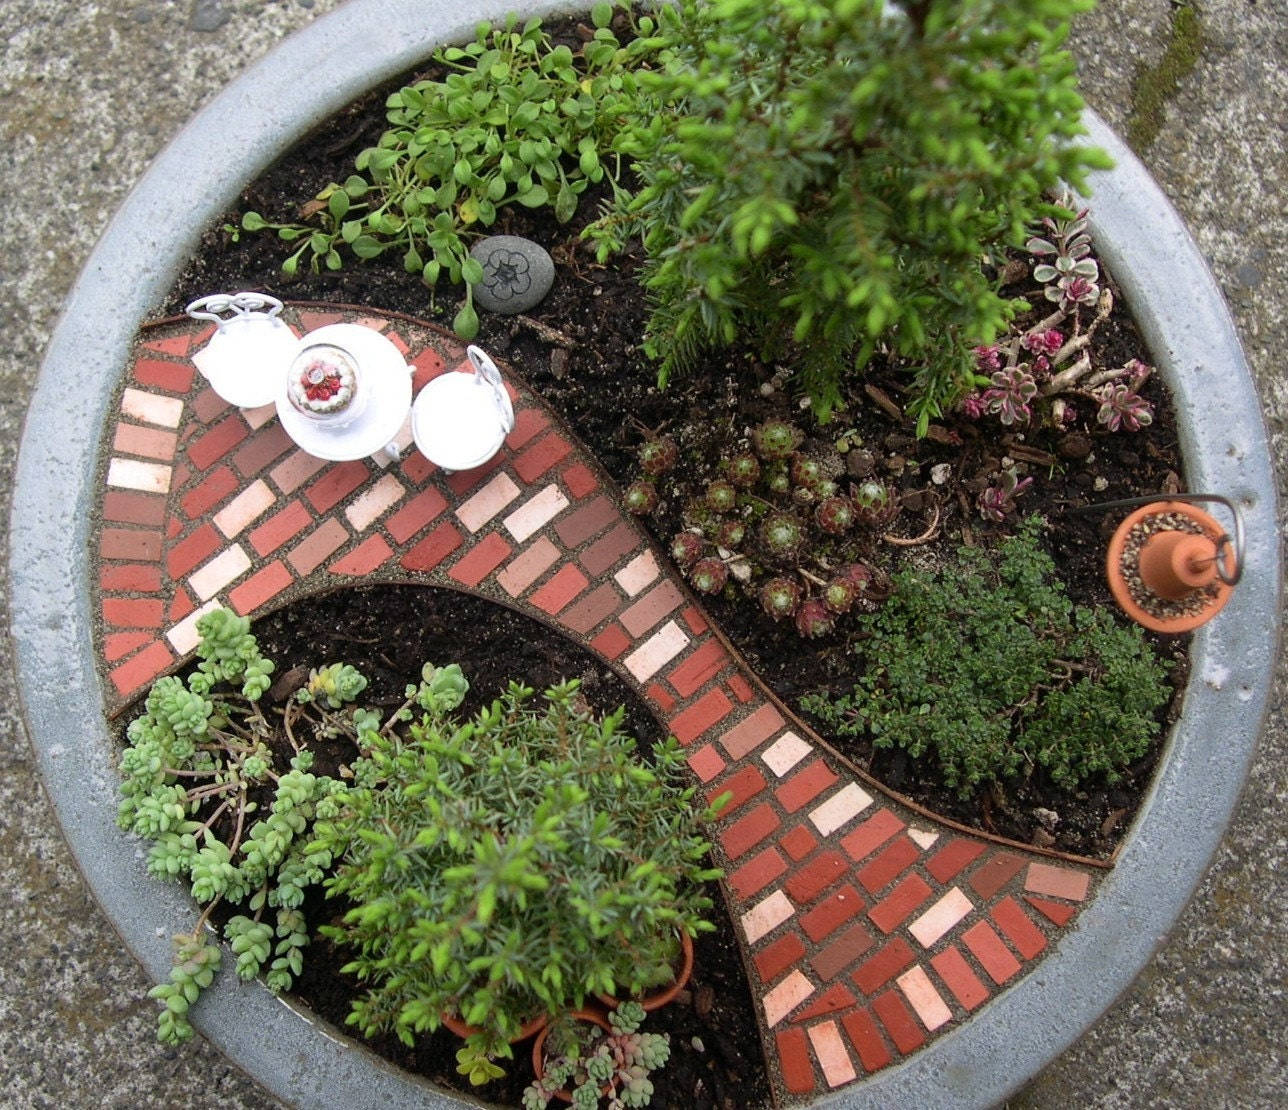 Mini Patio Mix Kit For Miniature or Fairy Gardens Paths by Janit